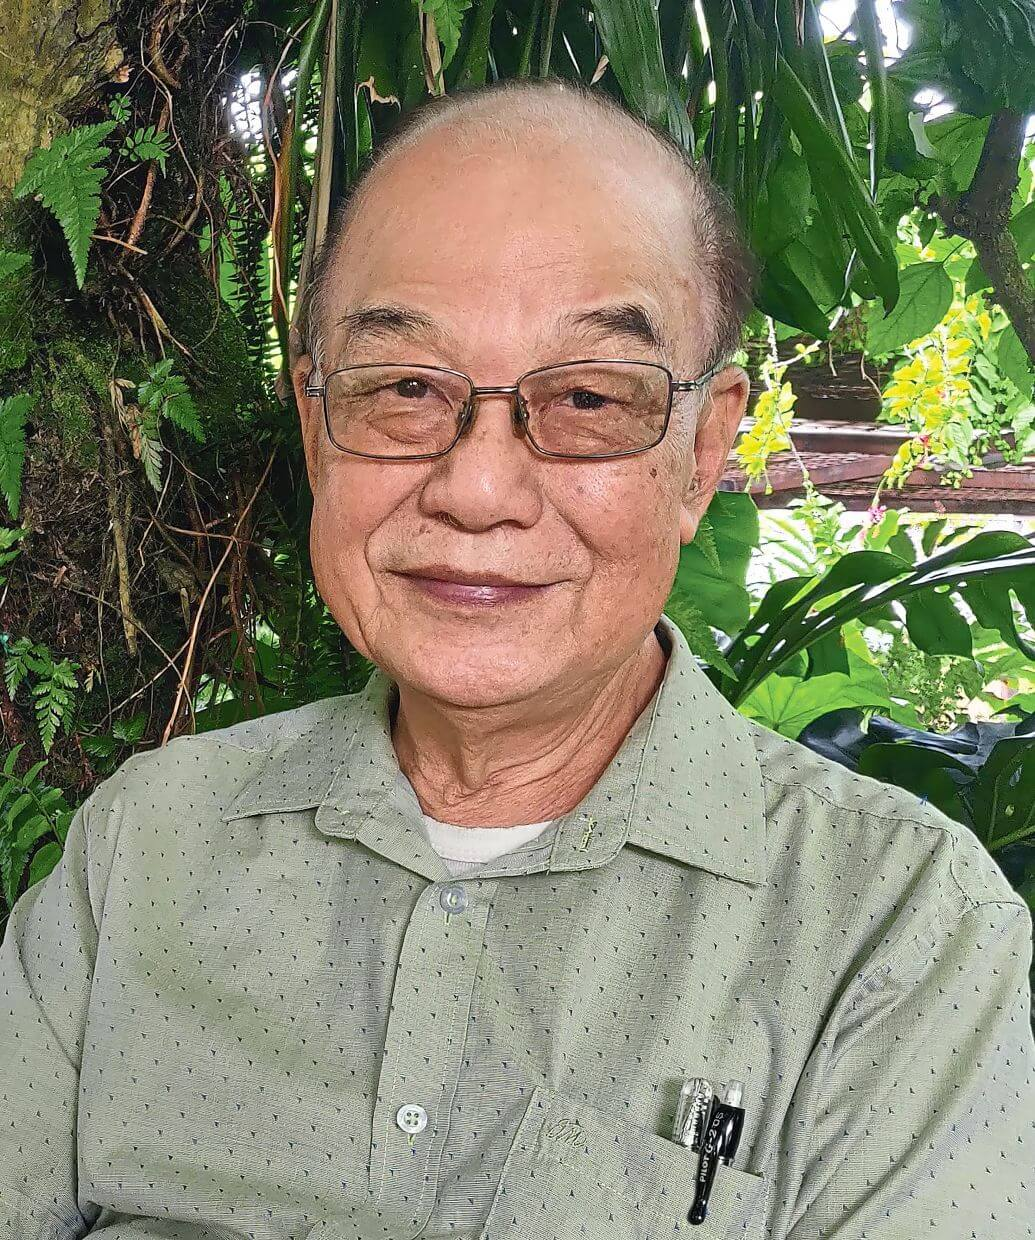 This is a very ambitious effort, but definitely a step in the right direction. It has the potential to make Gamuda Land the leader in sustainable development. - Dr Francis Ng Expert botanist and former deputy director-general at FRIM